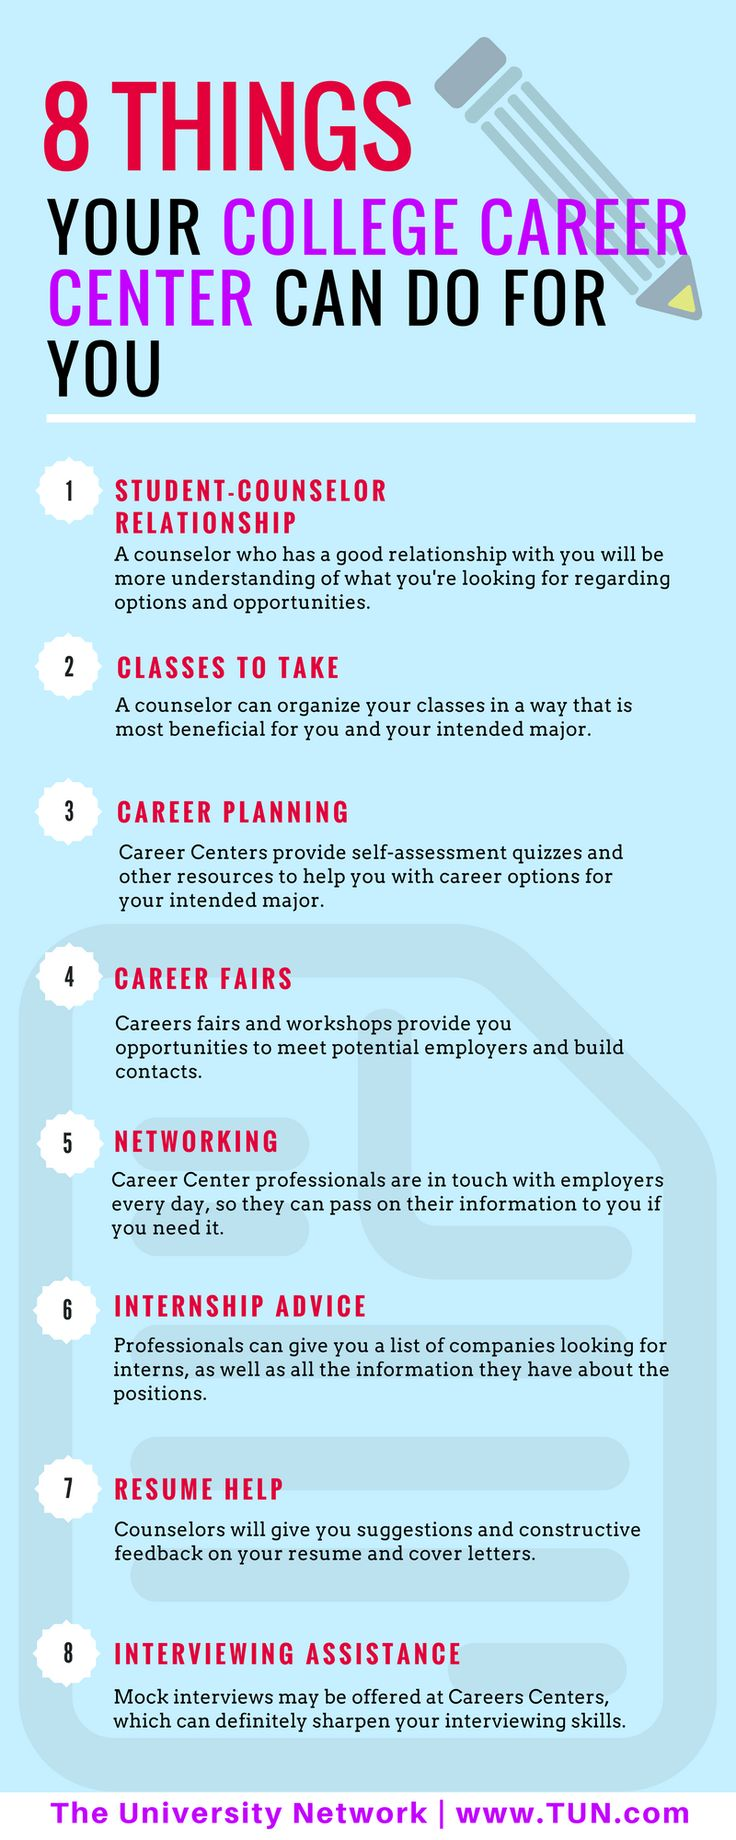 Most college students have had second thoughts about their chosen career path, or at some point been completely clueless about what they want to pursue as a career. Your college's Career Center is the perfect place for you to get clarity about your future, help on internships/jobs, and advice on resumes or preparation for interviews.